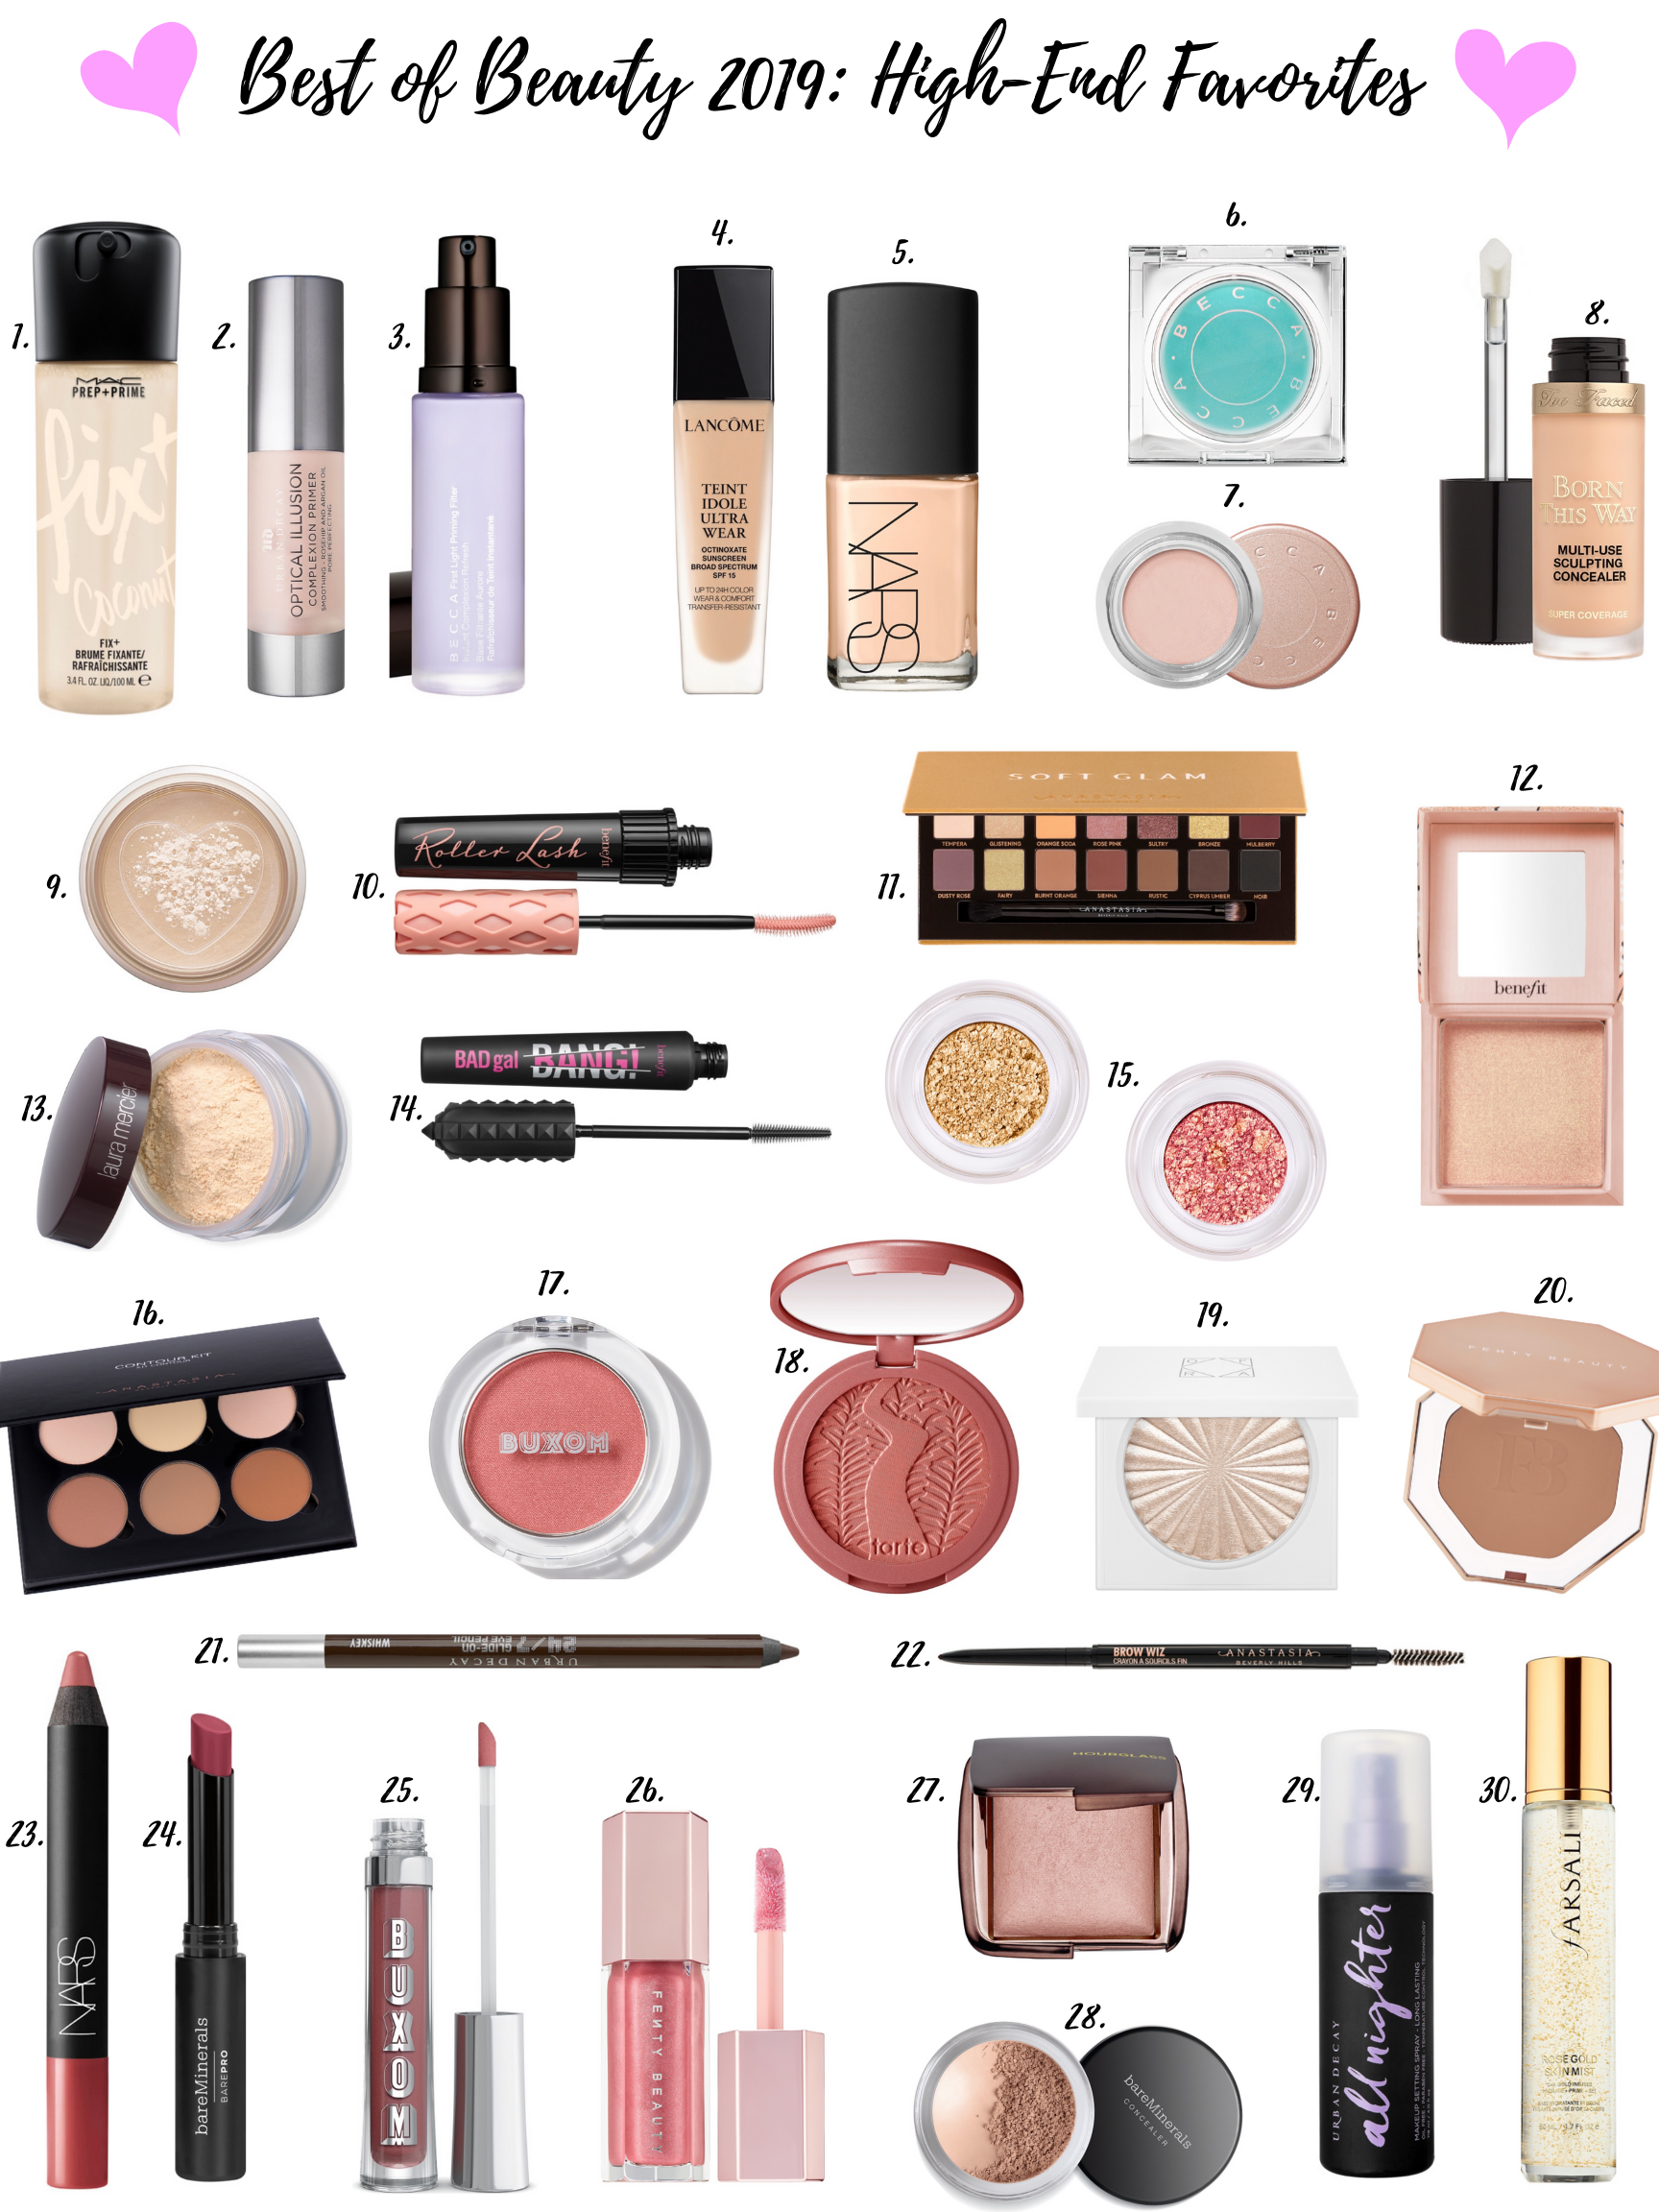 BEST OF BEAUTY 2019: HIGH-END FAVES